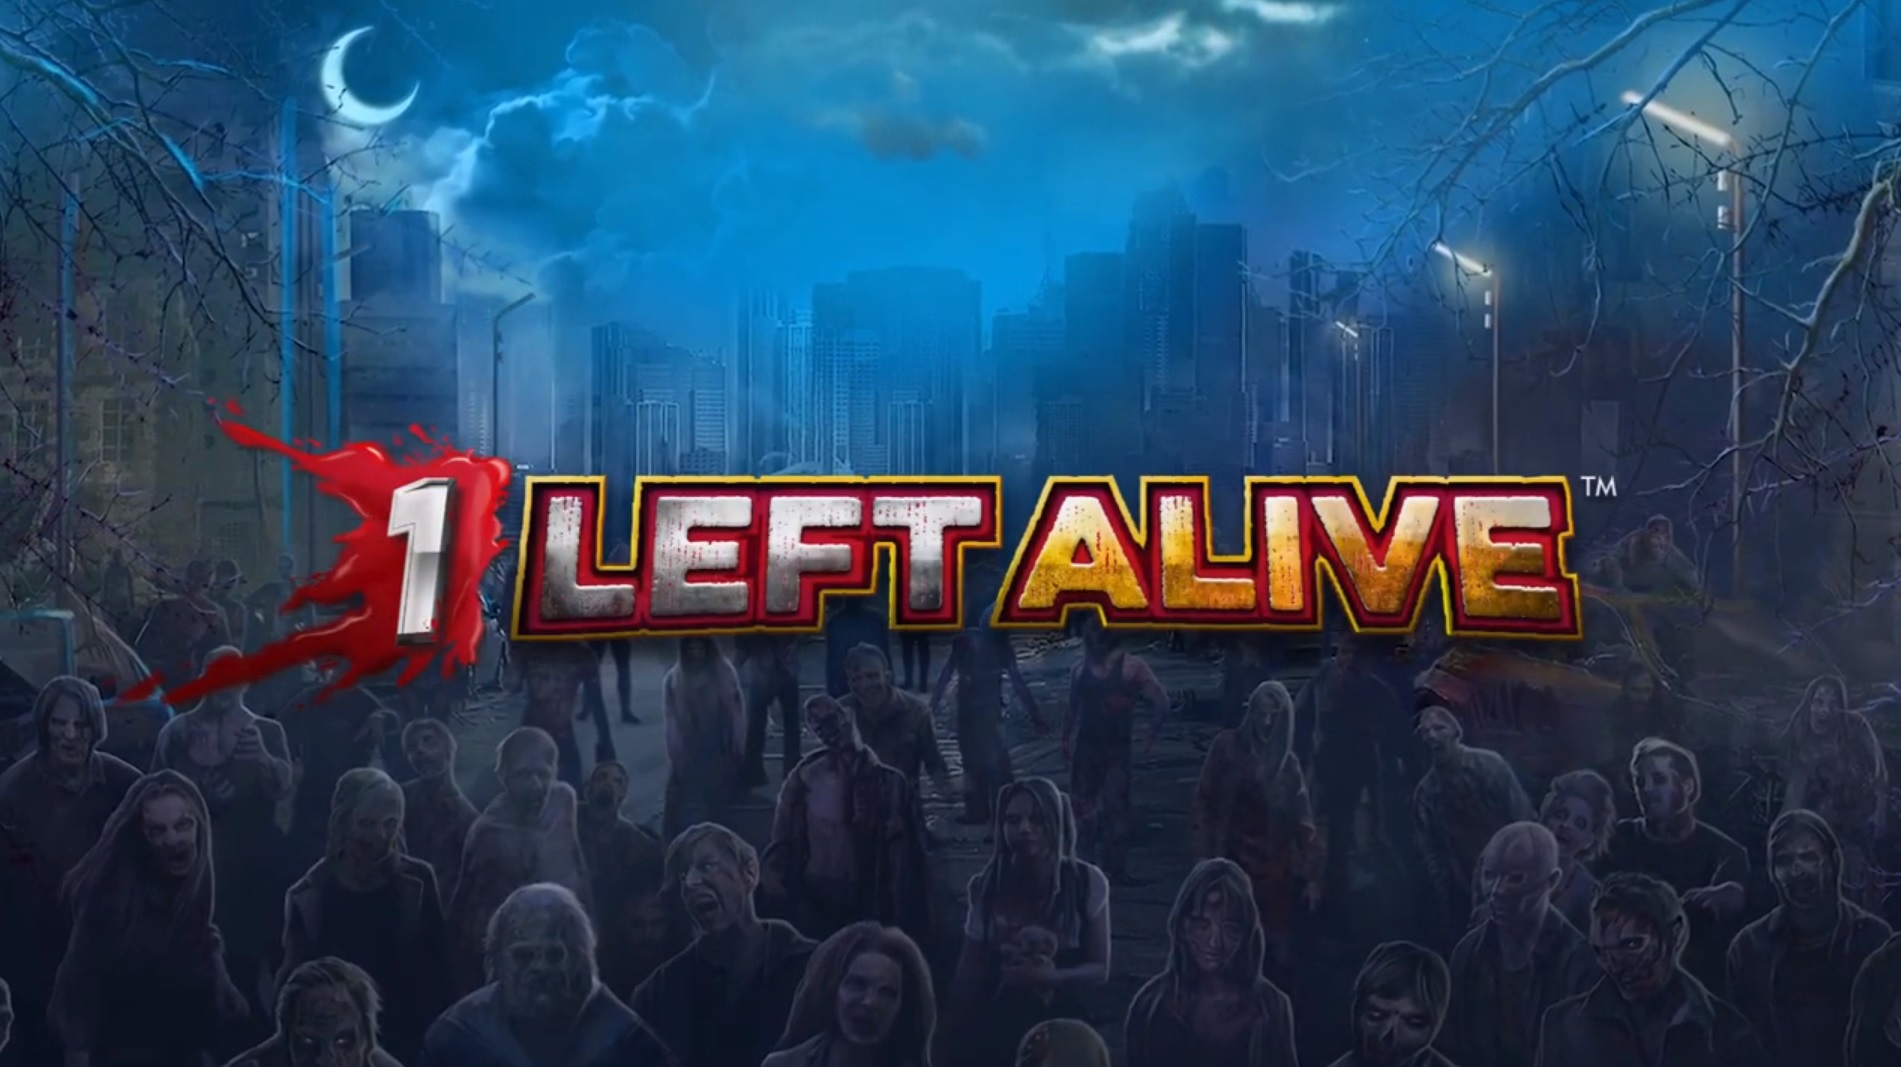 1 Left Alive slot logo by 4ThePlayer